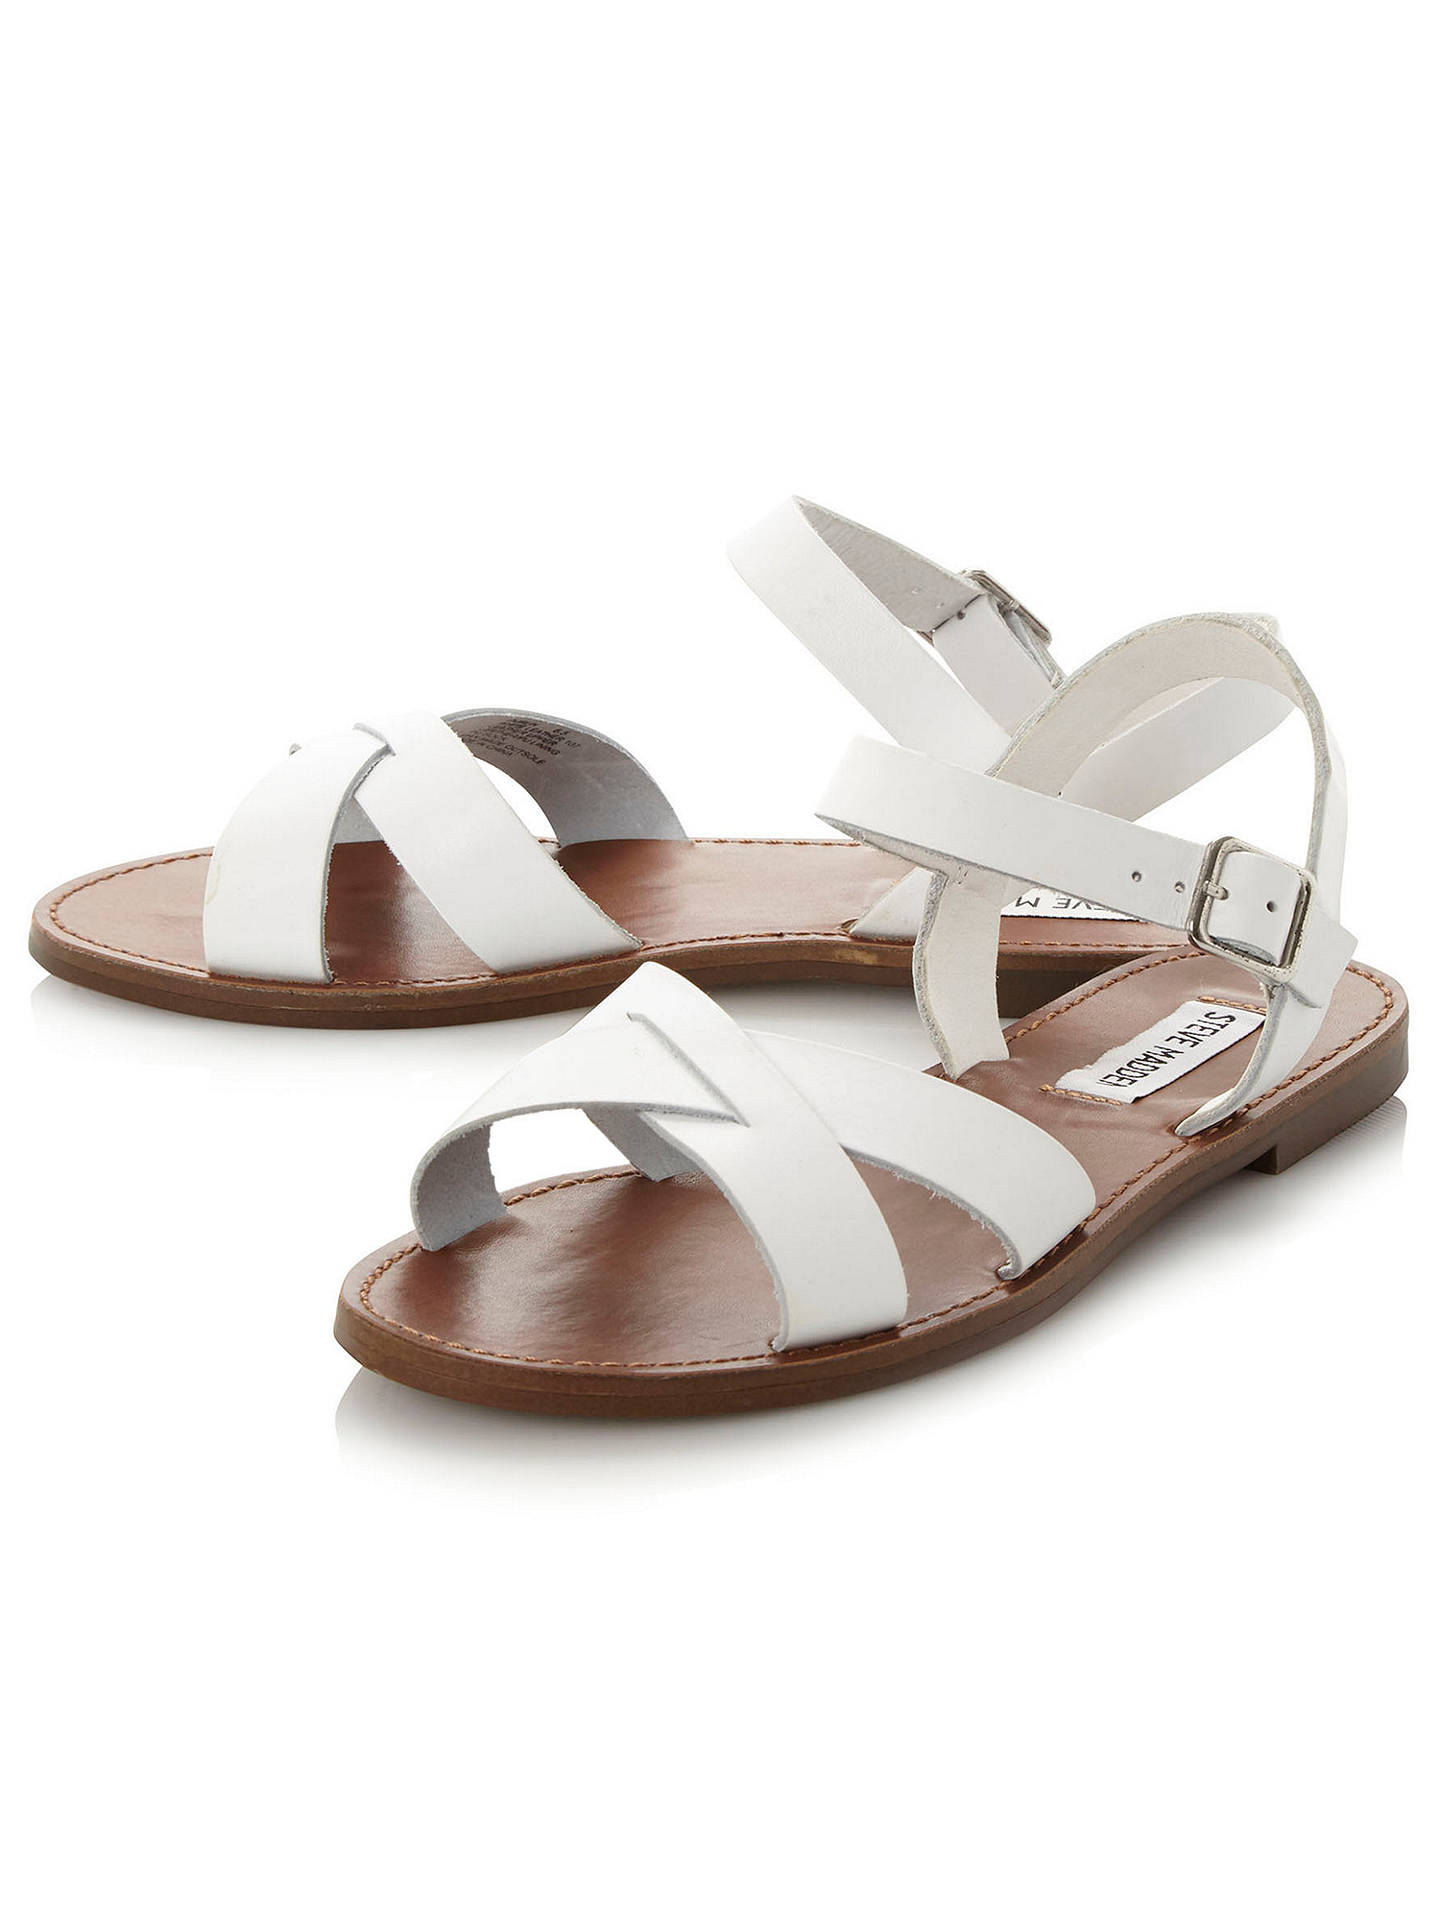 2d2d7eb0778 Steve Madden Dublin Cross Strap Flat Sandals at John Lewis & Partners